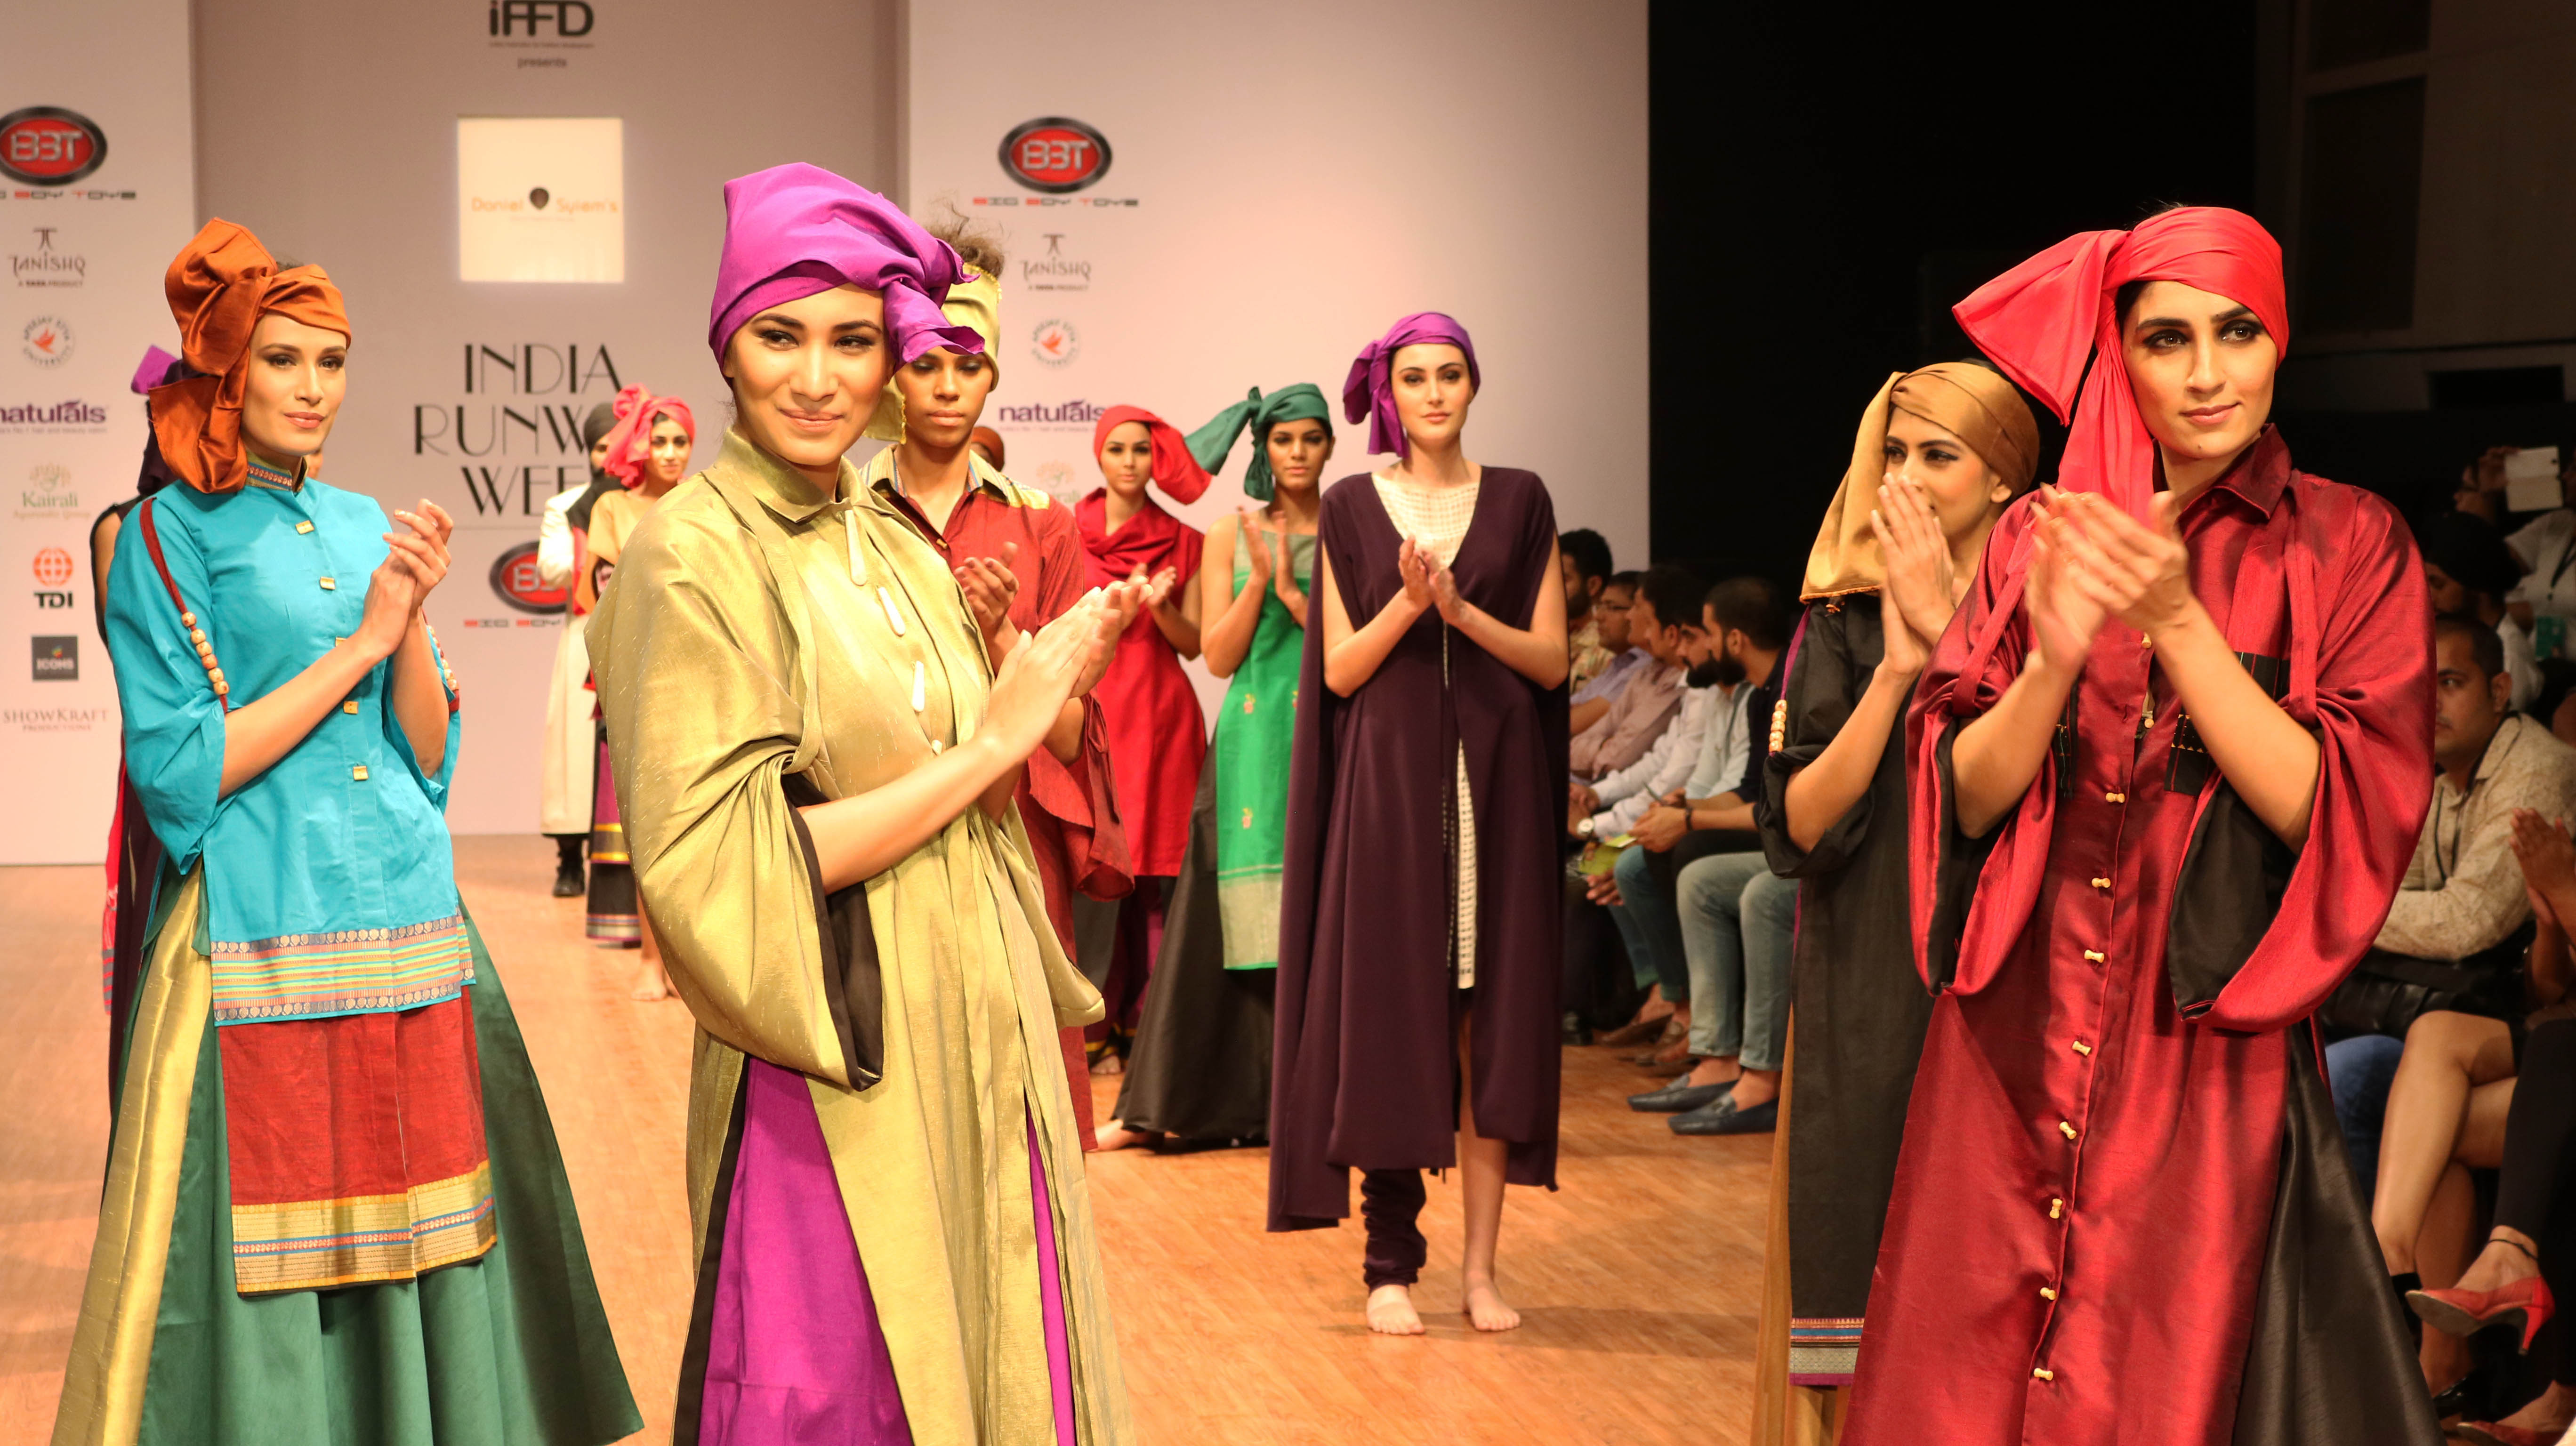 What\u0027s trending at fashion shows in India?